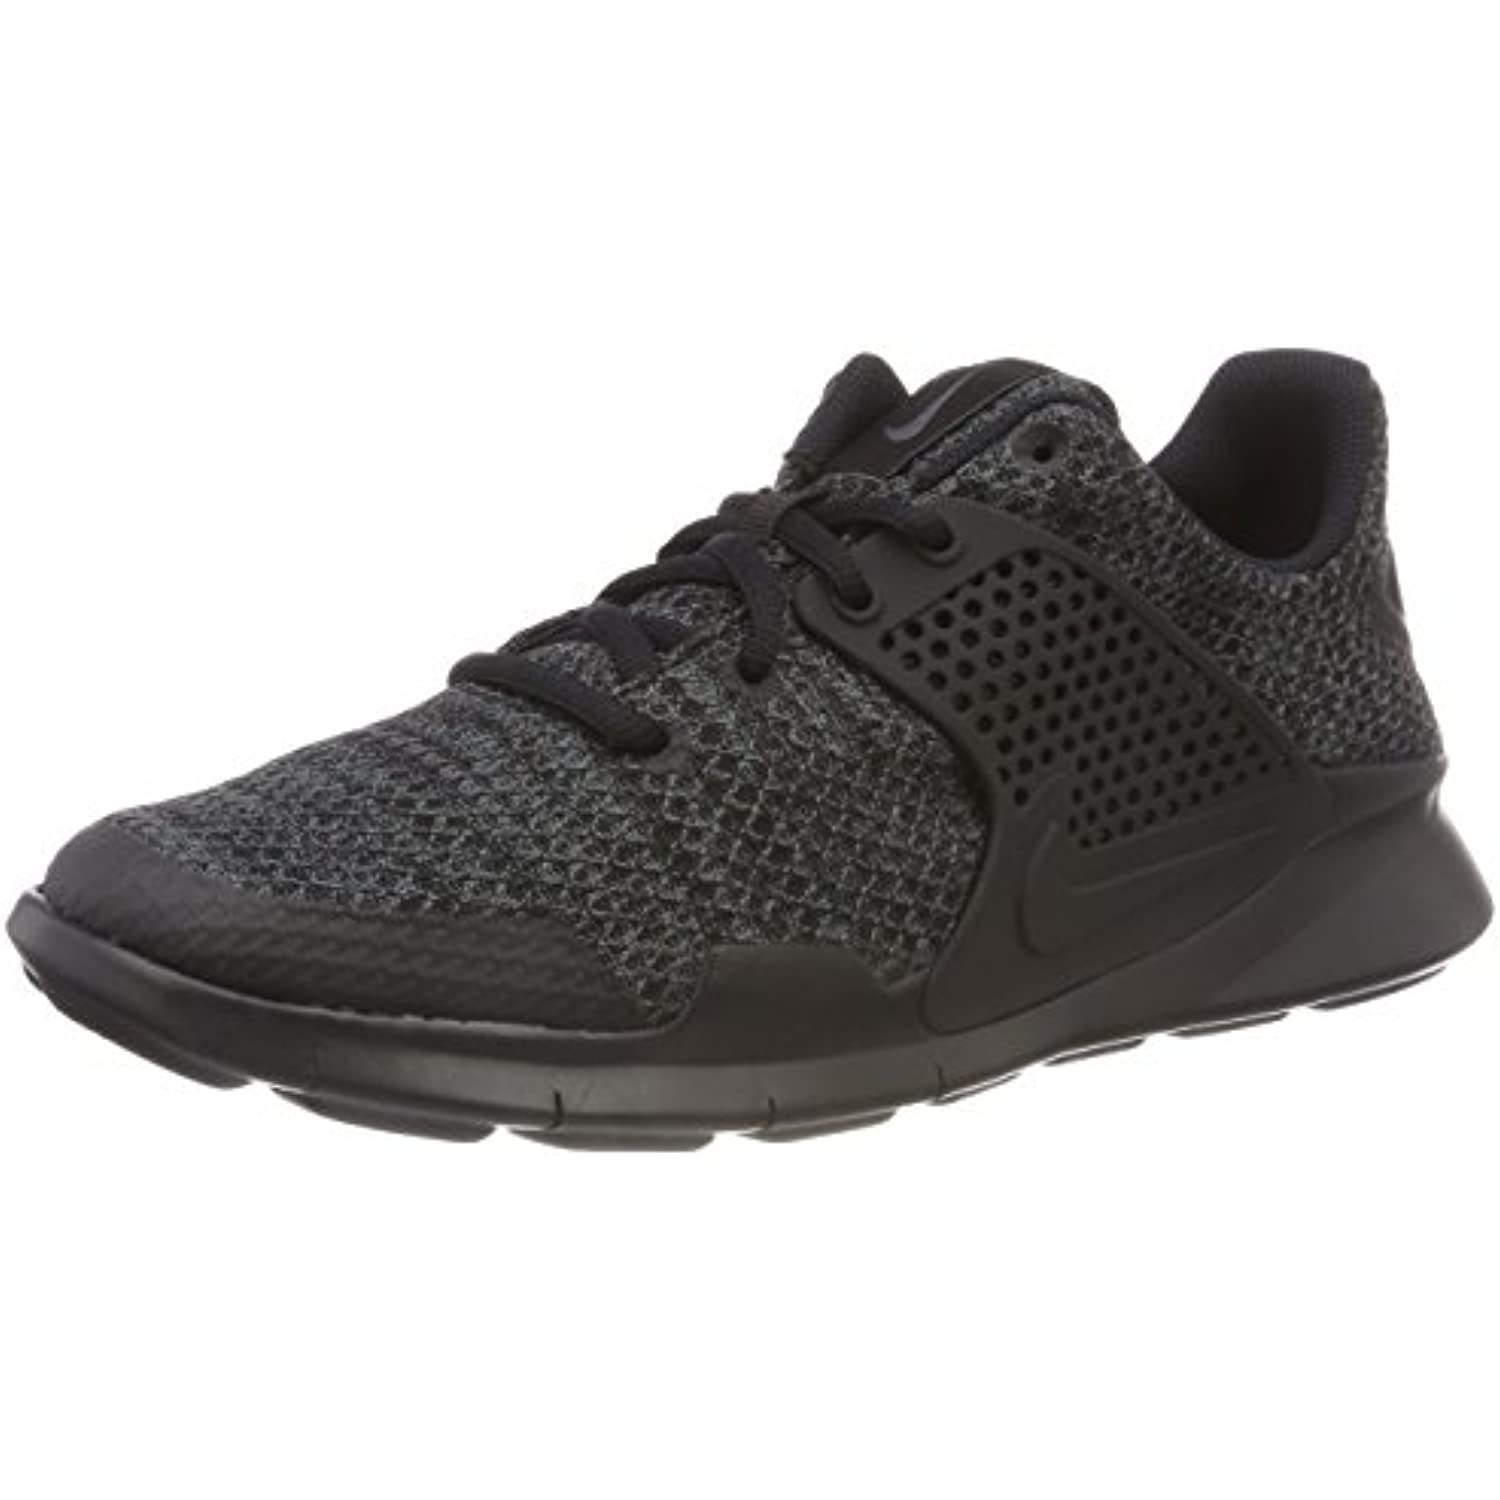 eb95340dc2 NIKE Arrowz Se, Chaussures Chaussures Chaussures de Fitness Homme  B07CYWKNJP - 5a9761